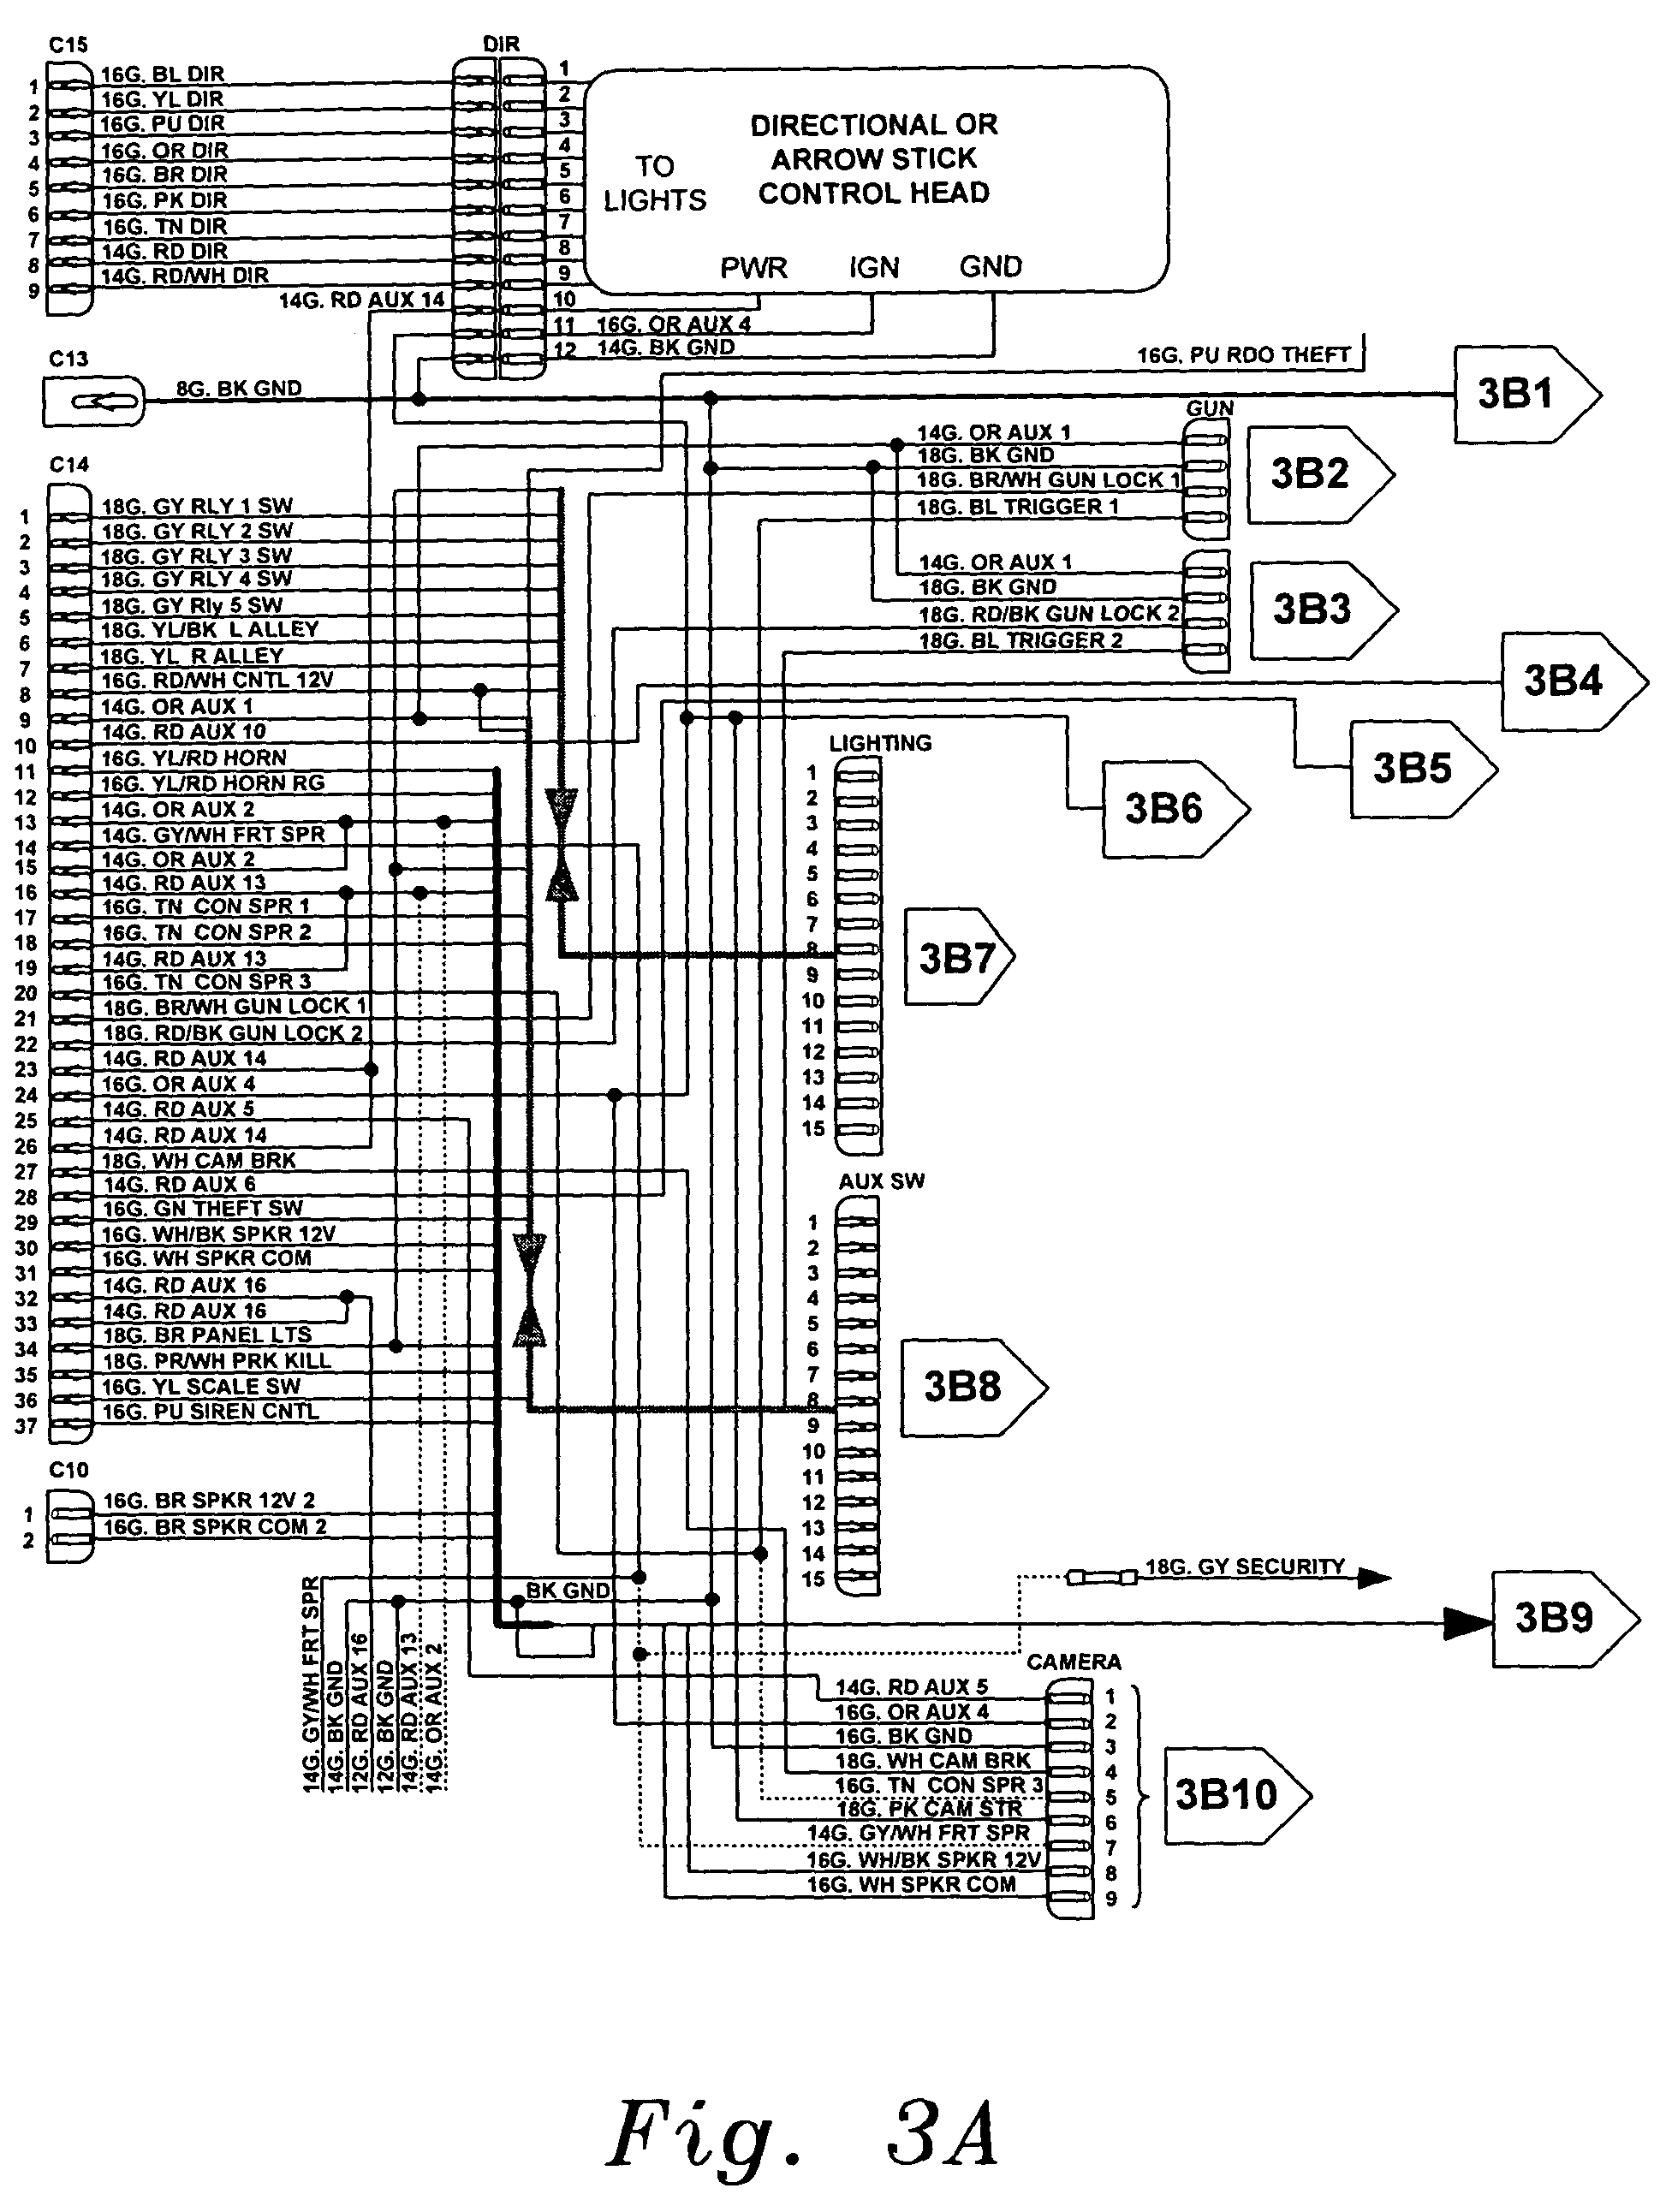 c18 cat ecm pin wiring diagram